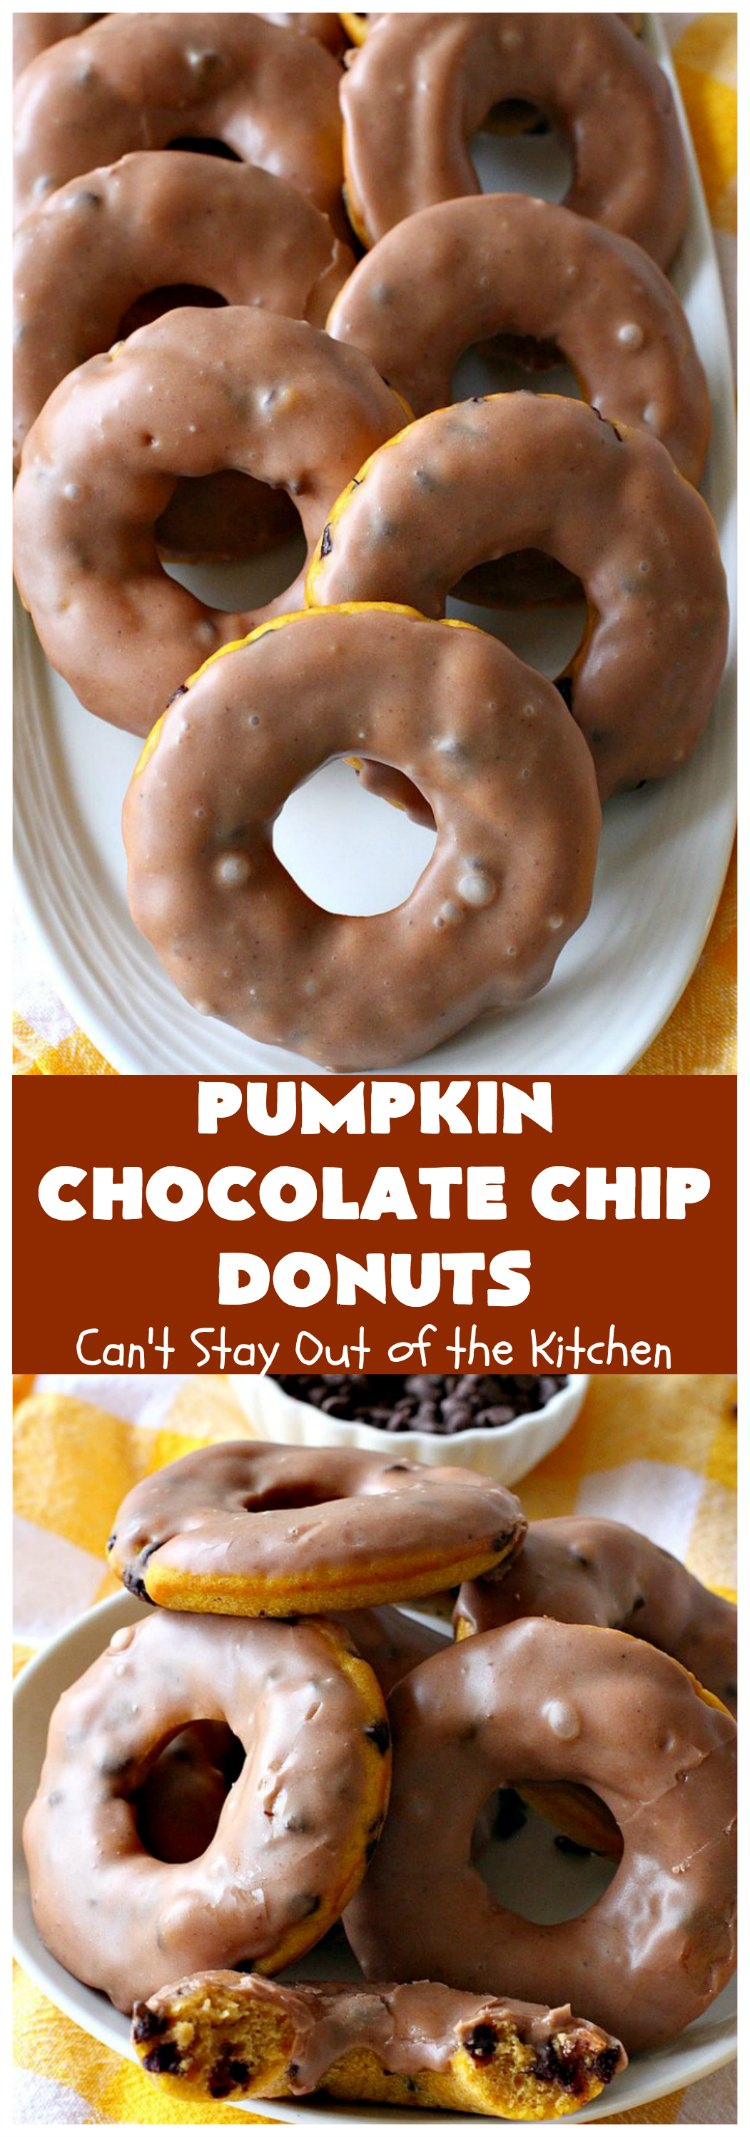 Pumpkin Chocolate Chip Donuts | Can't Stay Out of the Kitchen